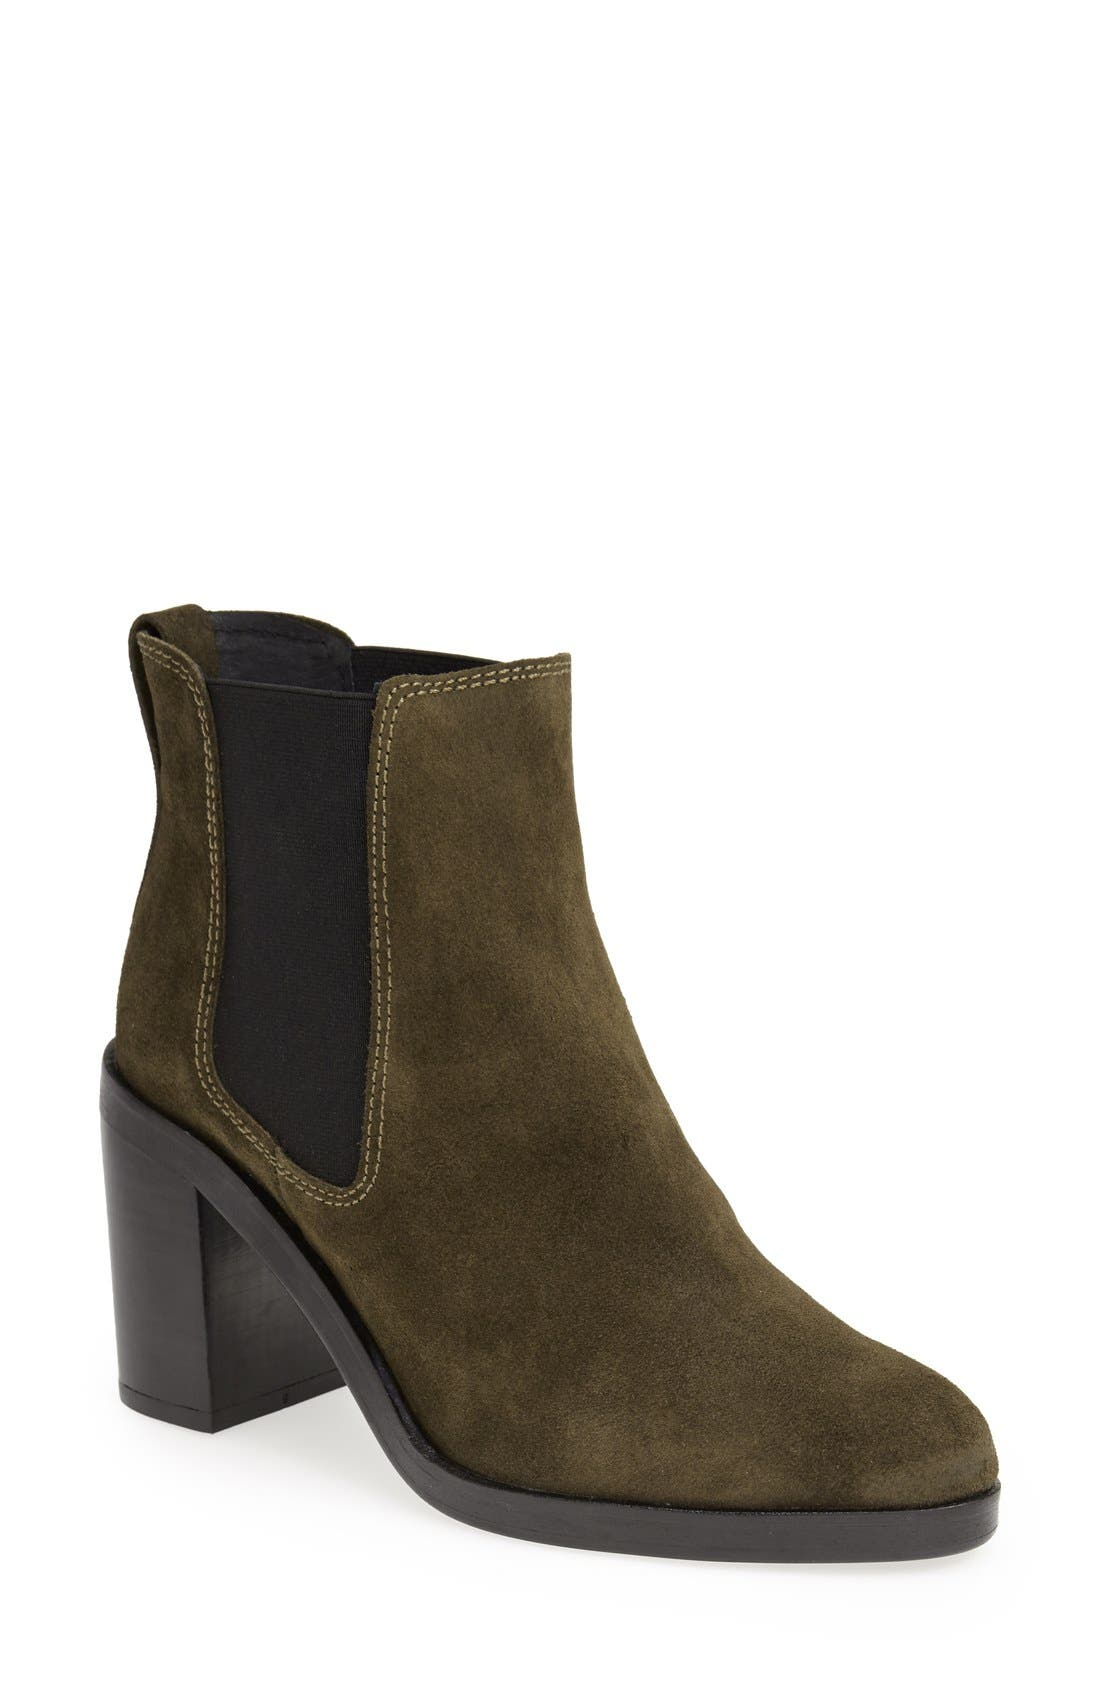 Alternate Image 1 Selected - Topshop 'Missile' Chelsea Boot (Women)